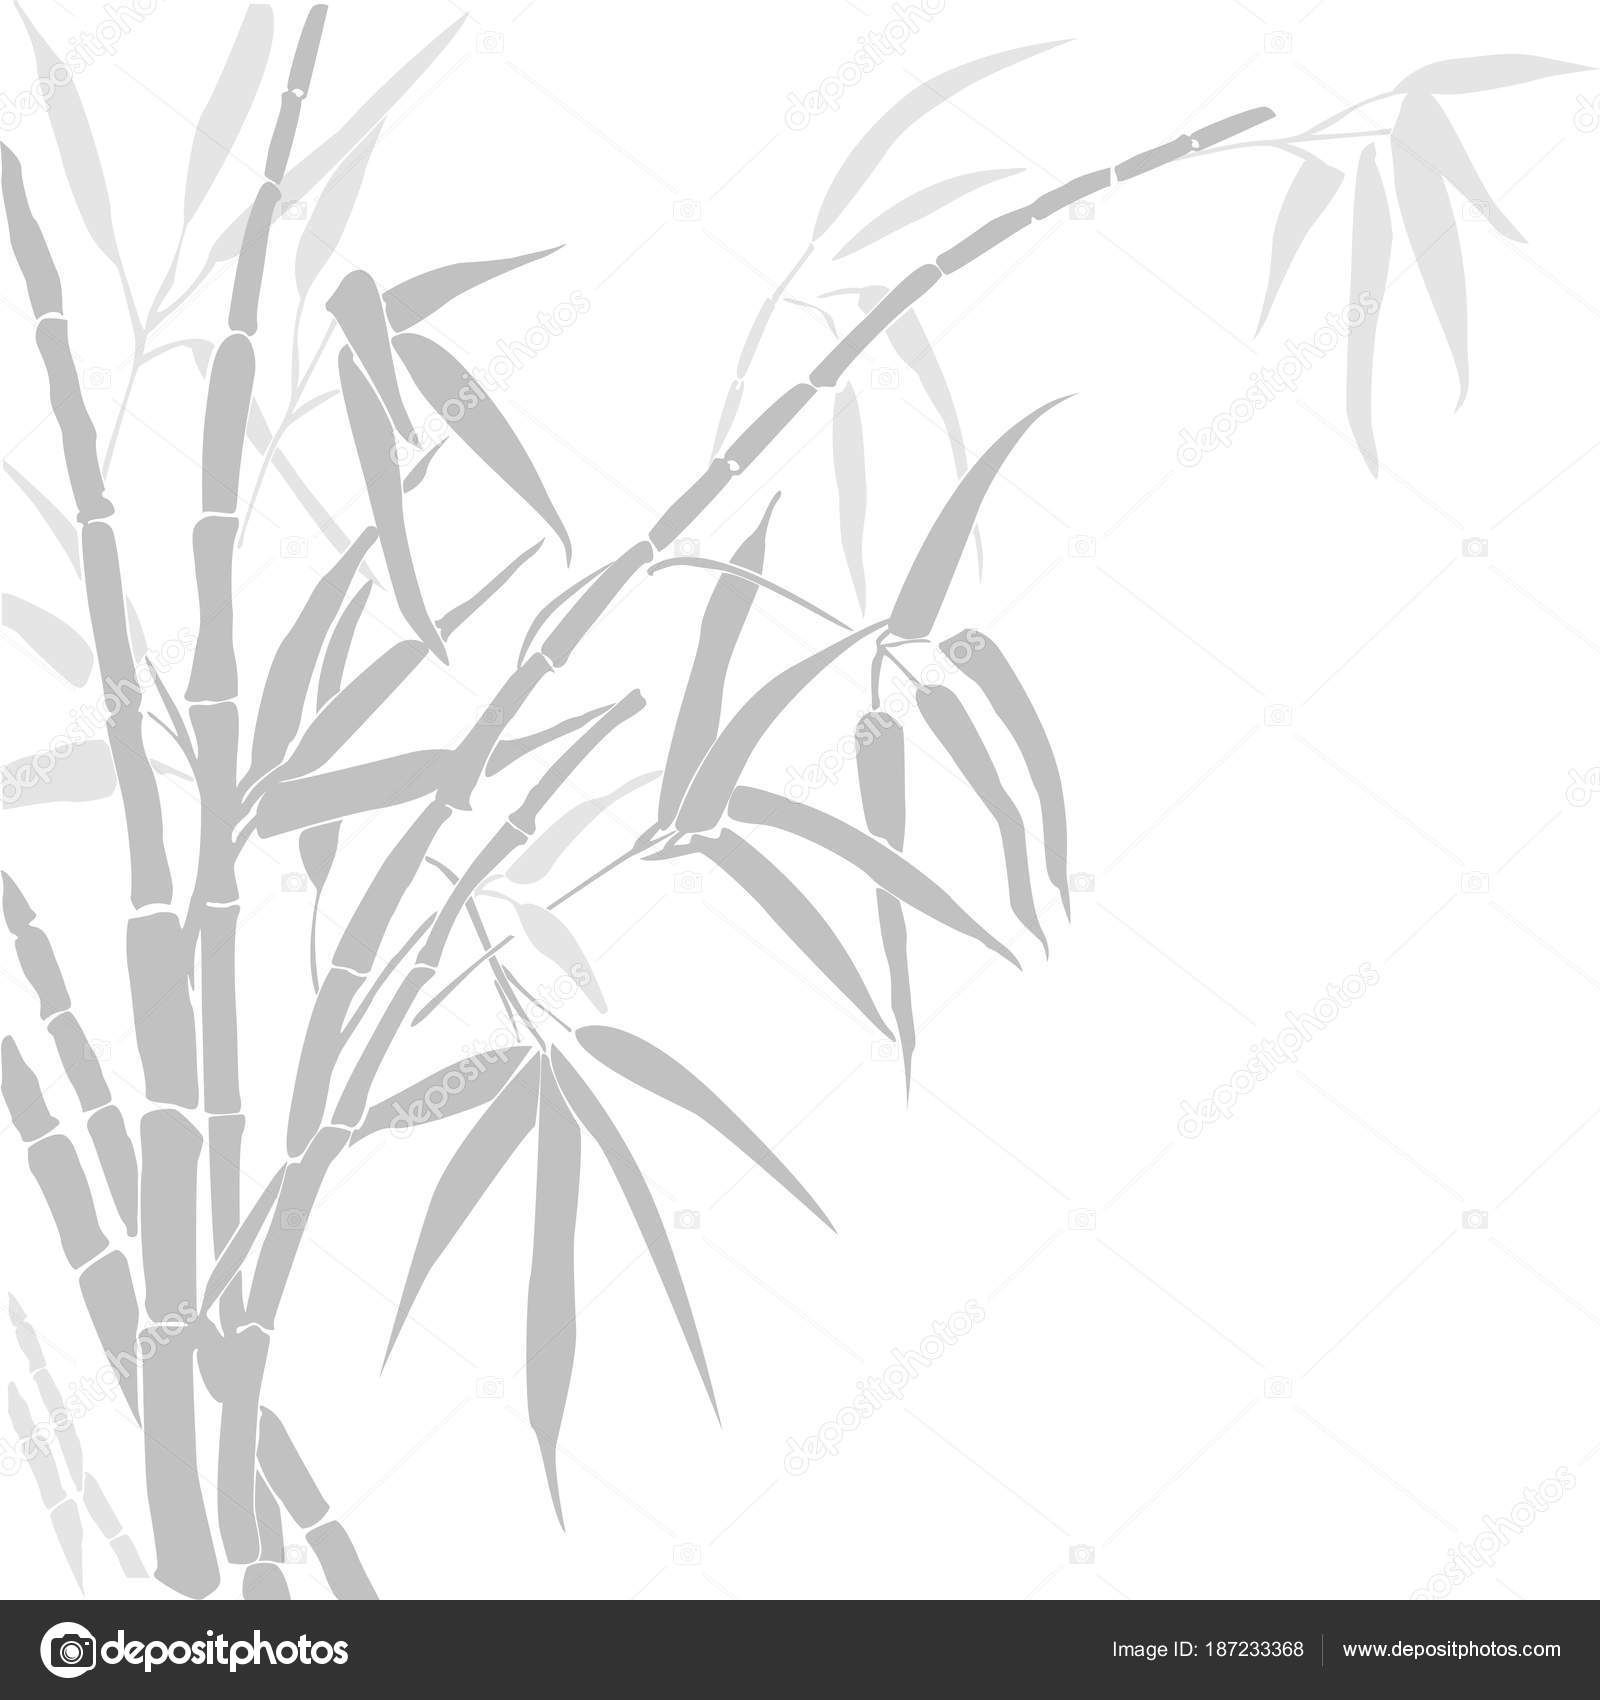 bamboo vector silhouette bamboo silhouette bamboo gray colors isolated white stock vector c avto mkcentr yandex ru 187233368 https depositphotos com 187233368 stock illustration bamboo vector silhouette bamboo silhouette html